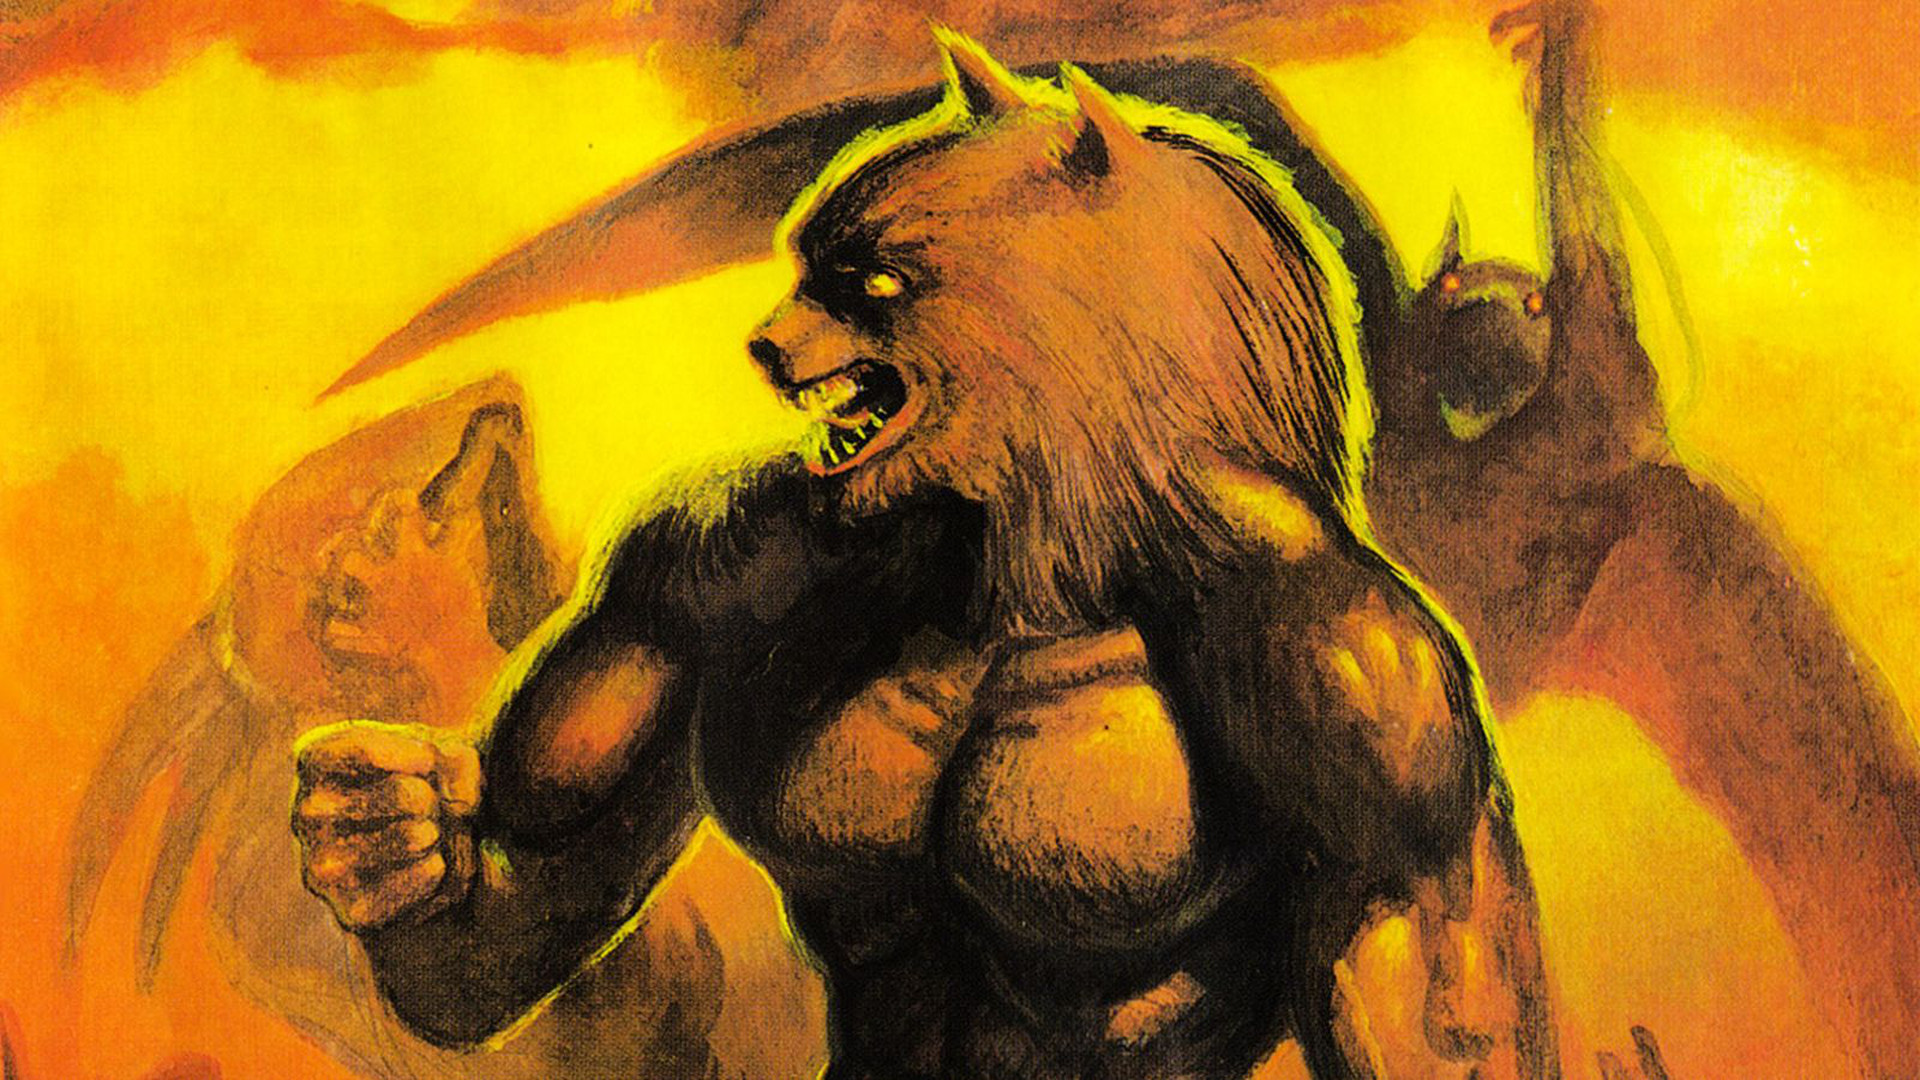 Altered beast details launchbox games database for Altered beast